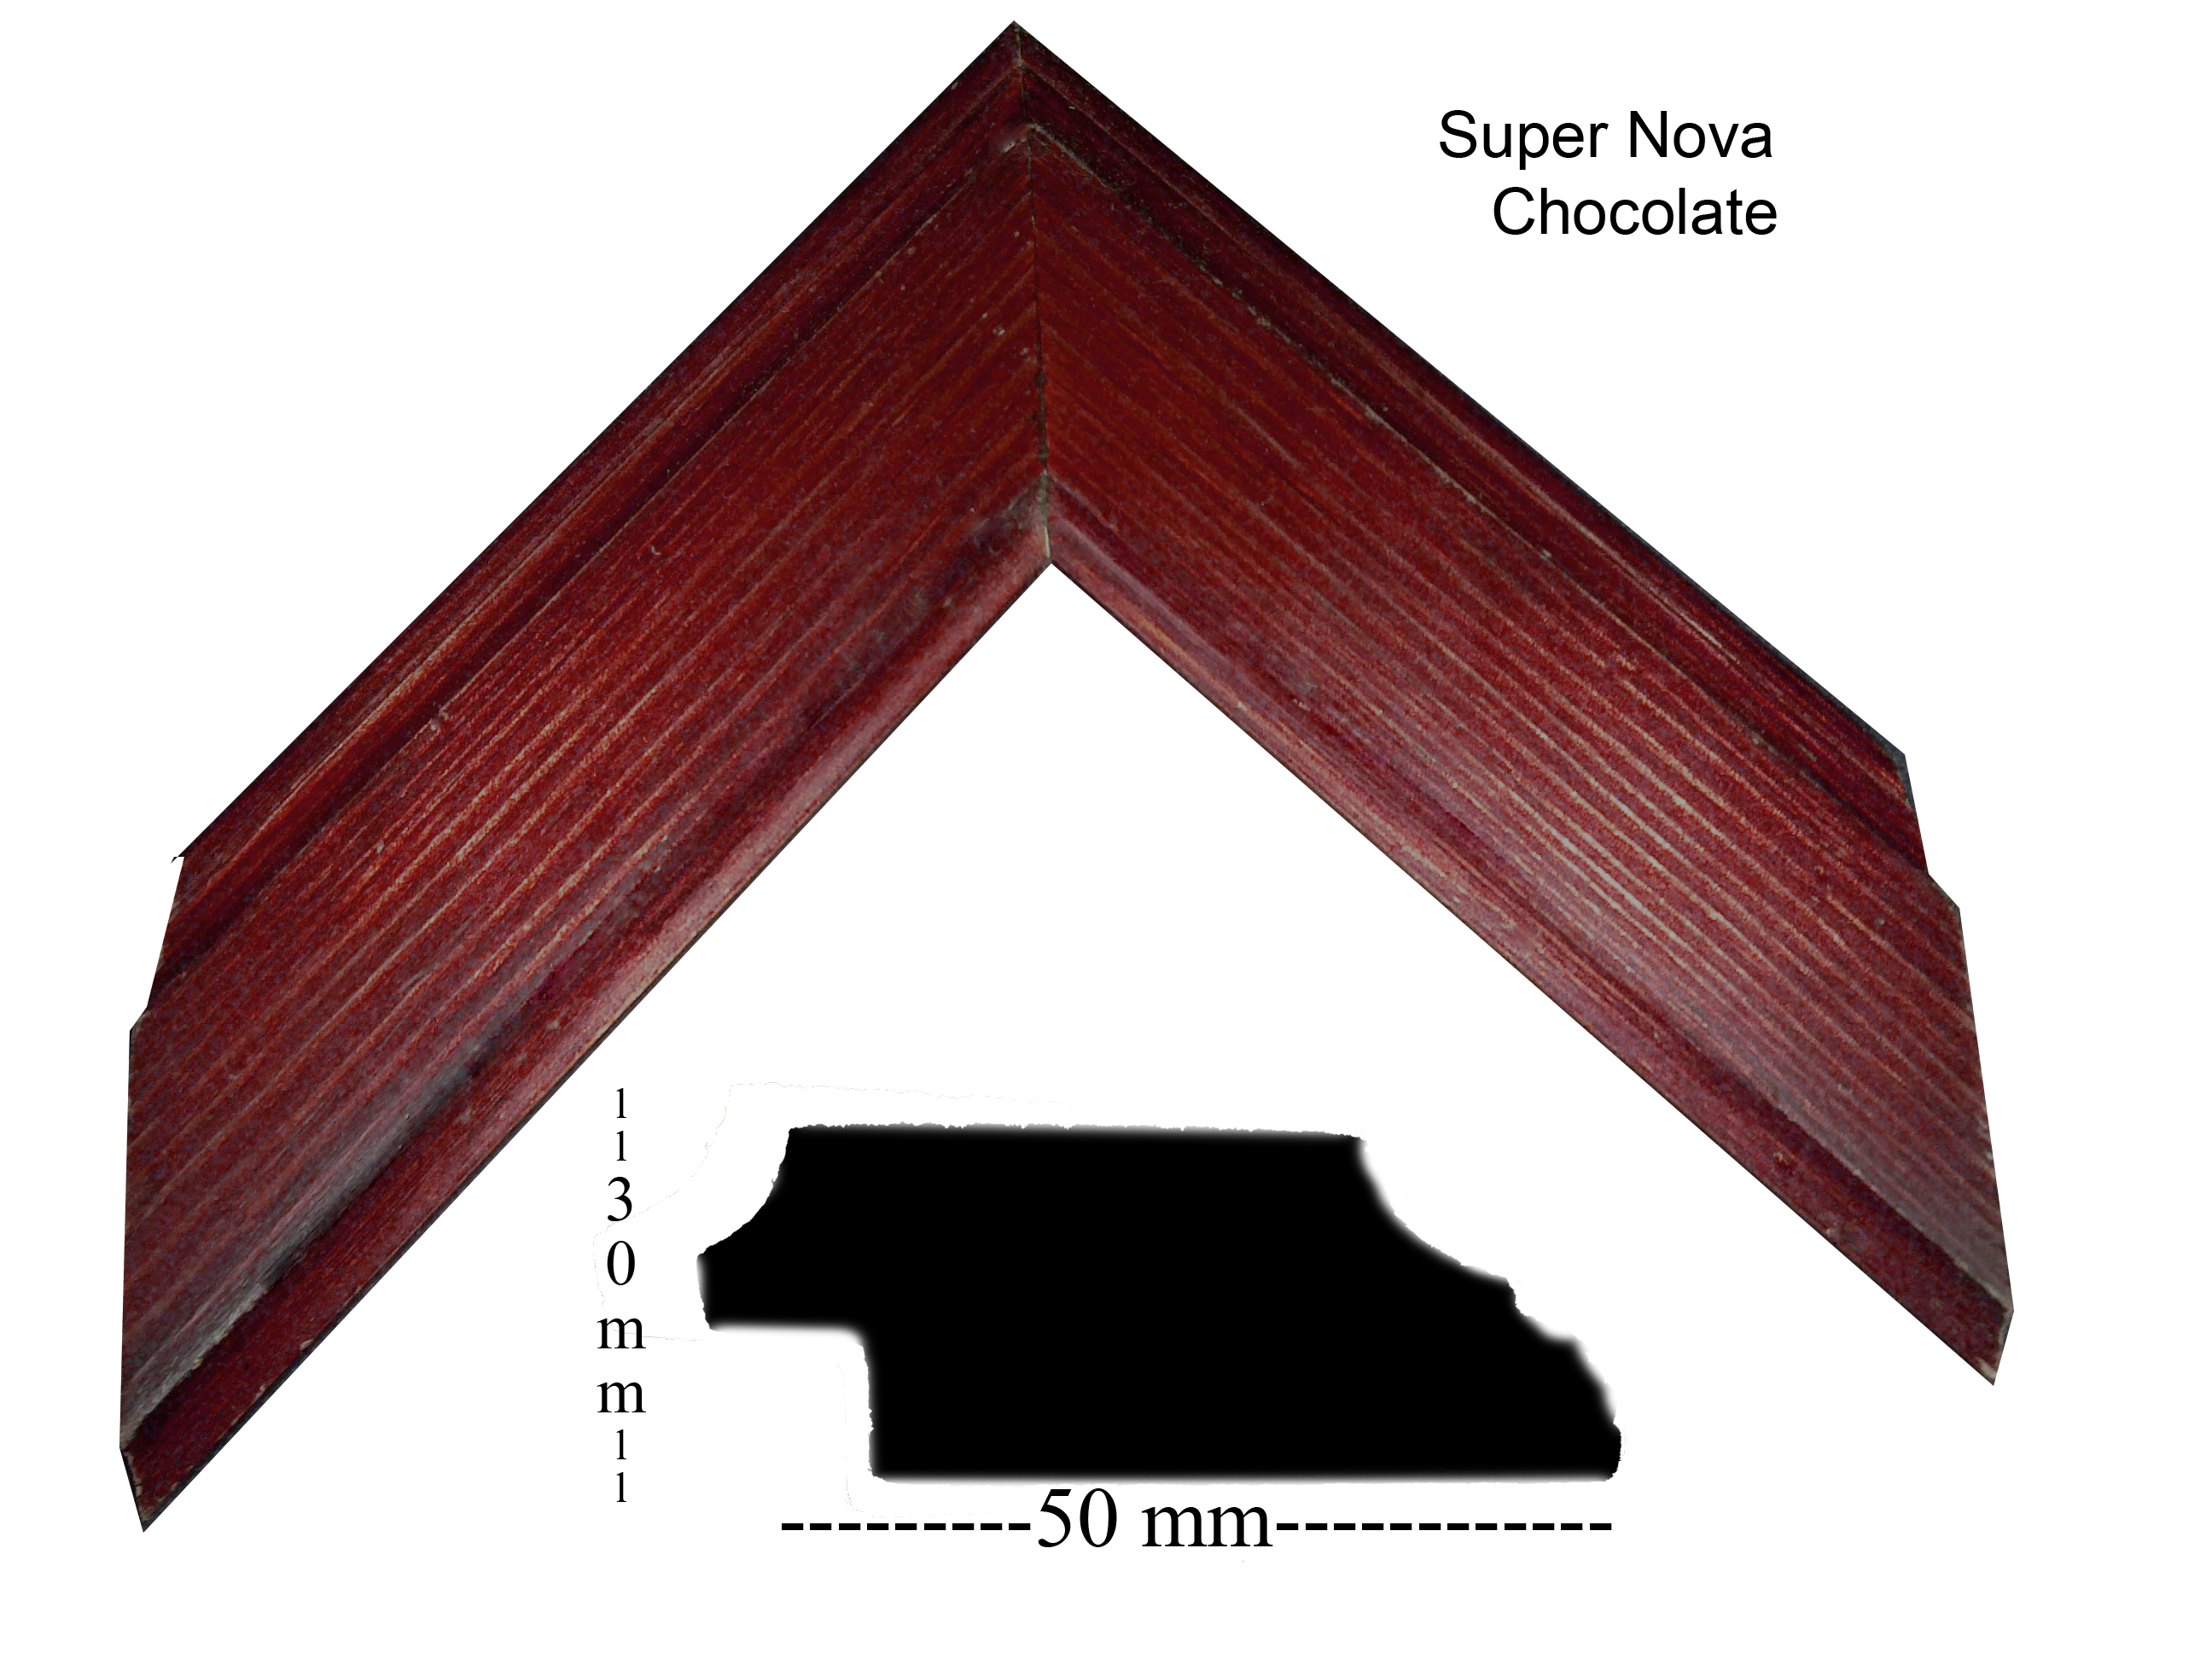 Mold super nova chocolate